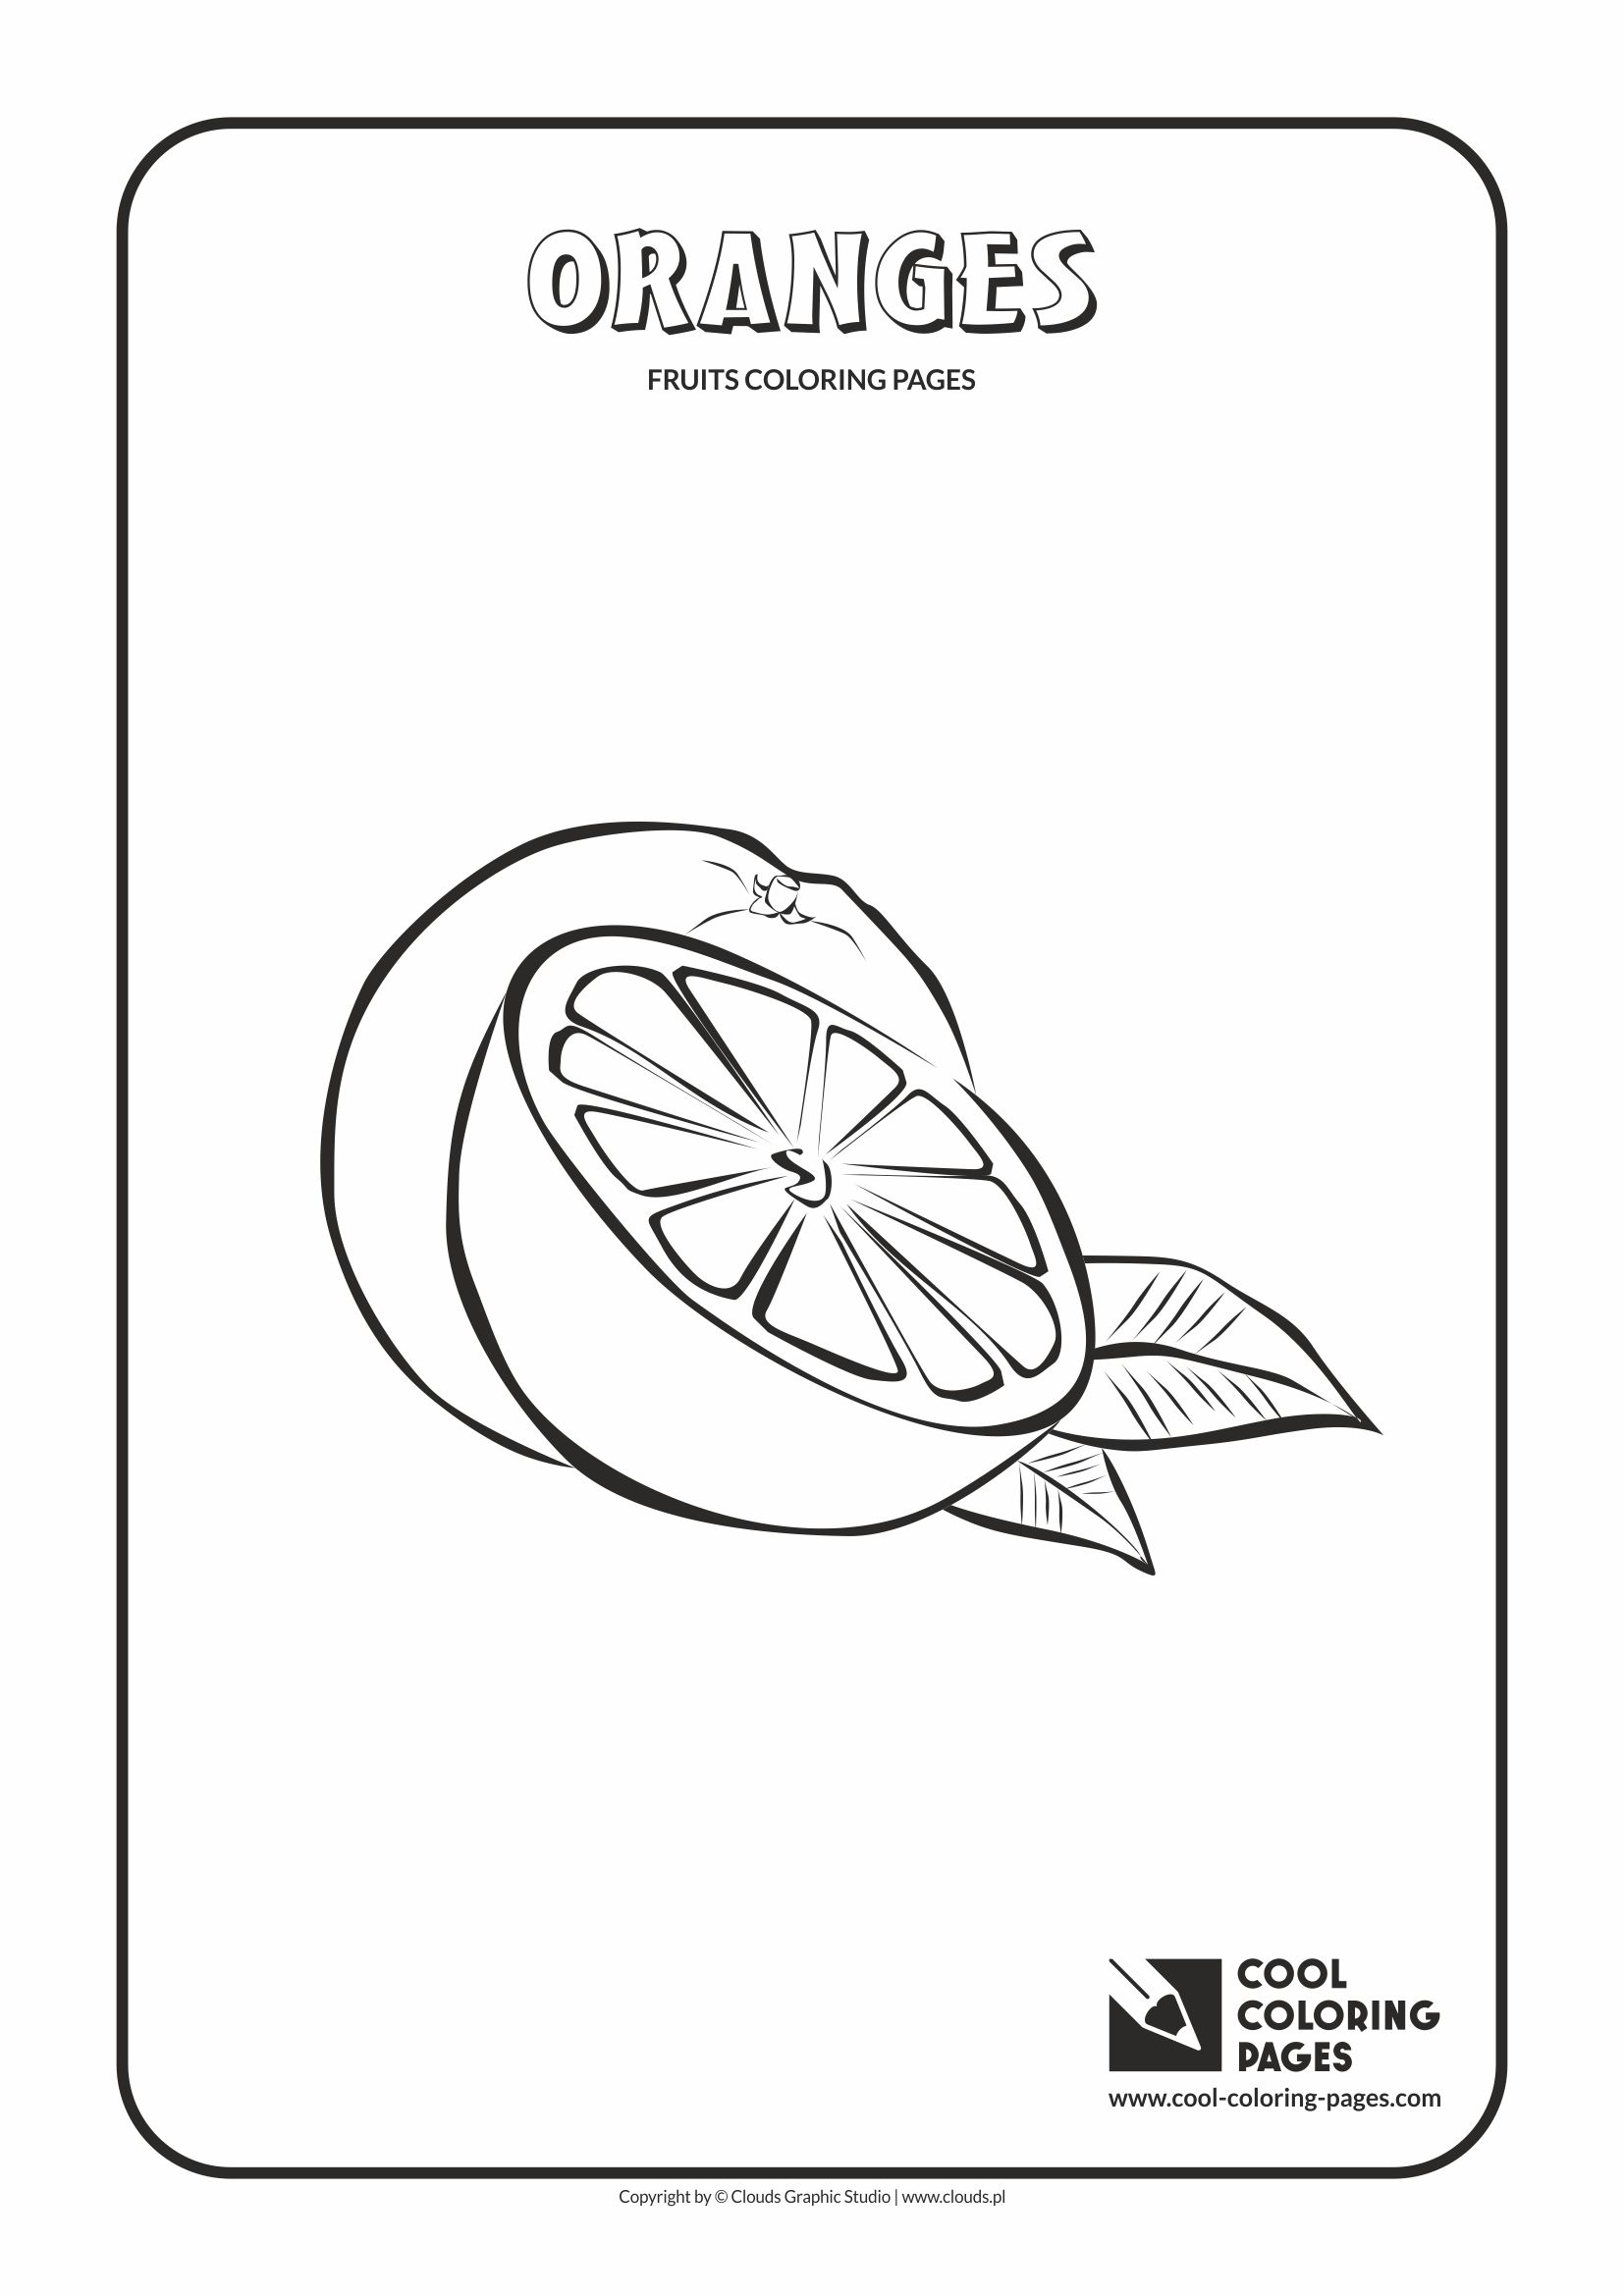 Cool Coloring Pages - Plants / Oranges / Coloring page with oranges